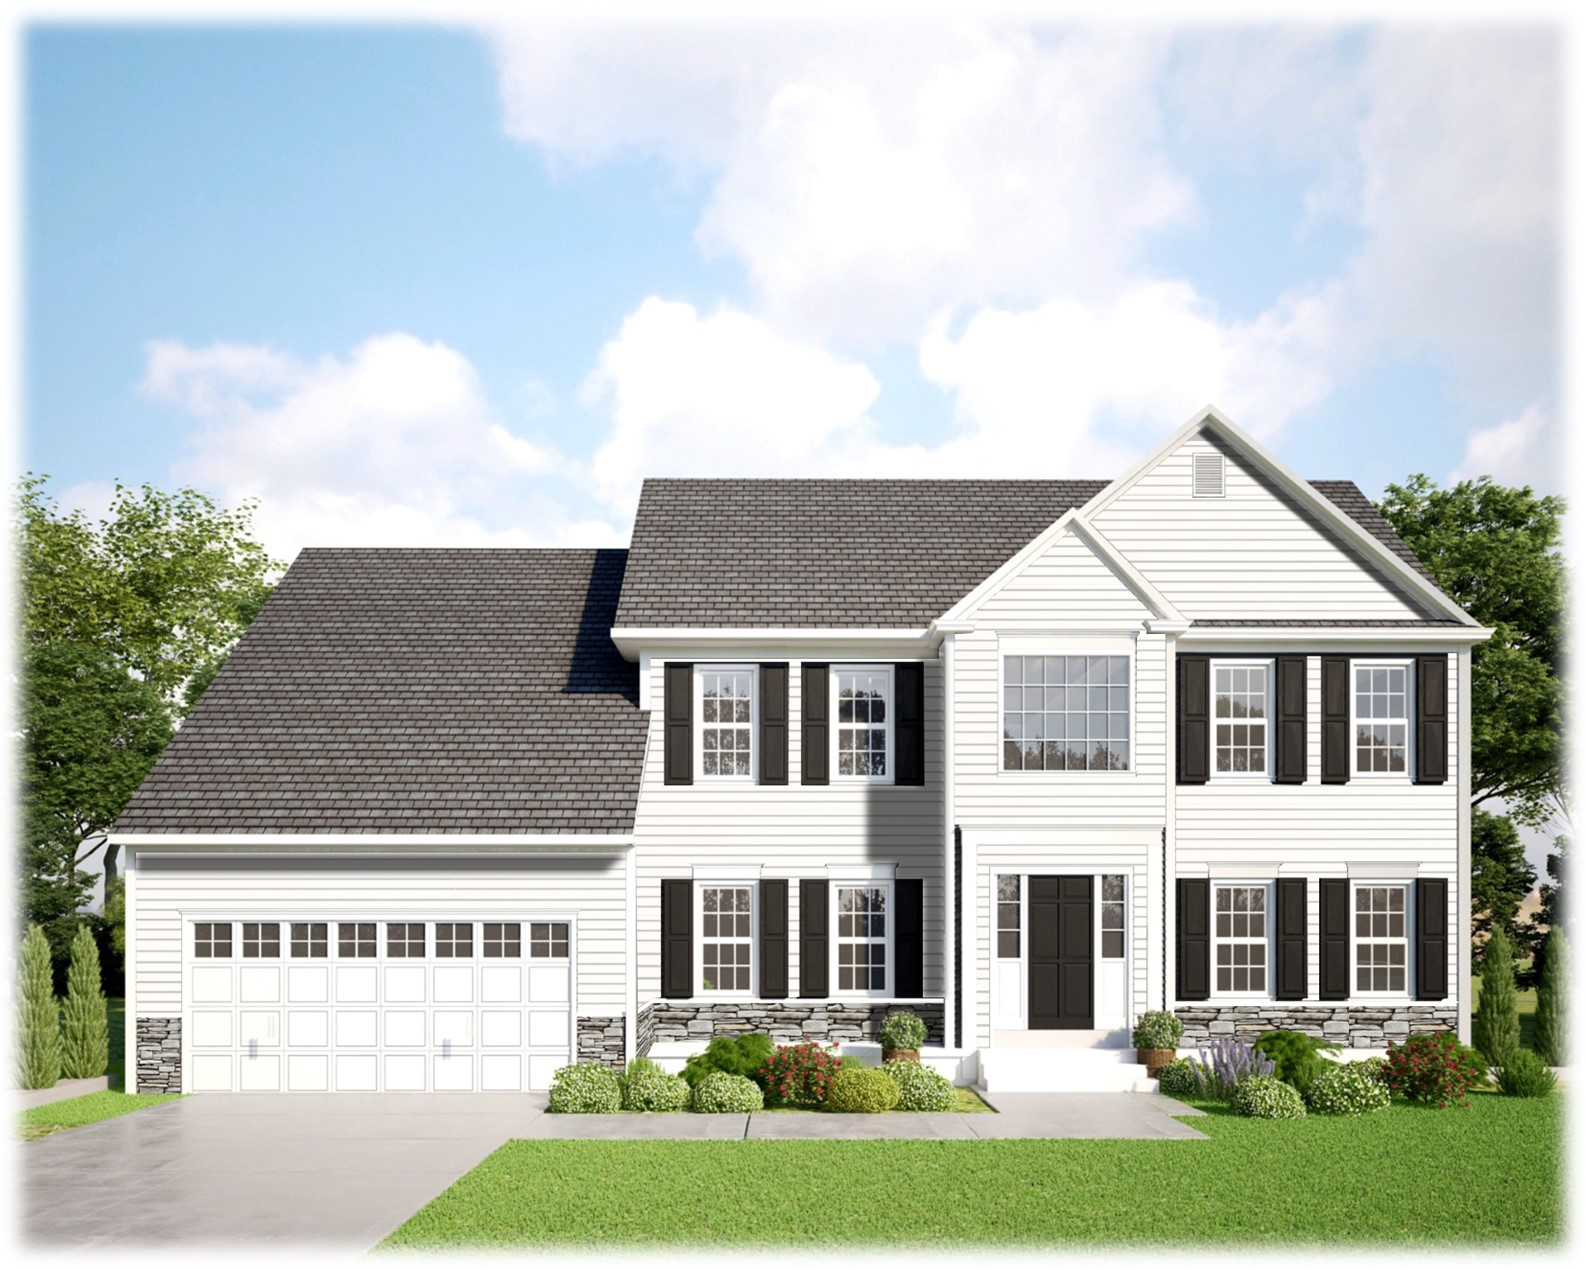 Engineered Exterior Photo of a Two-Story Home - Dark Gray with Black Shutters